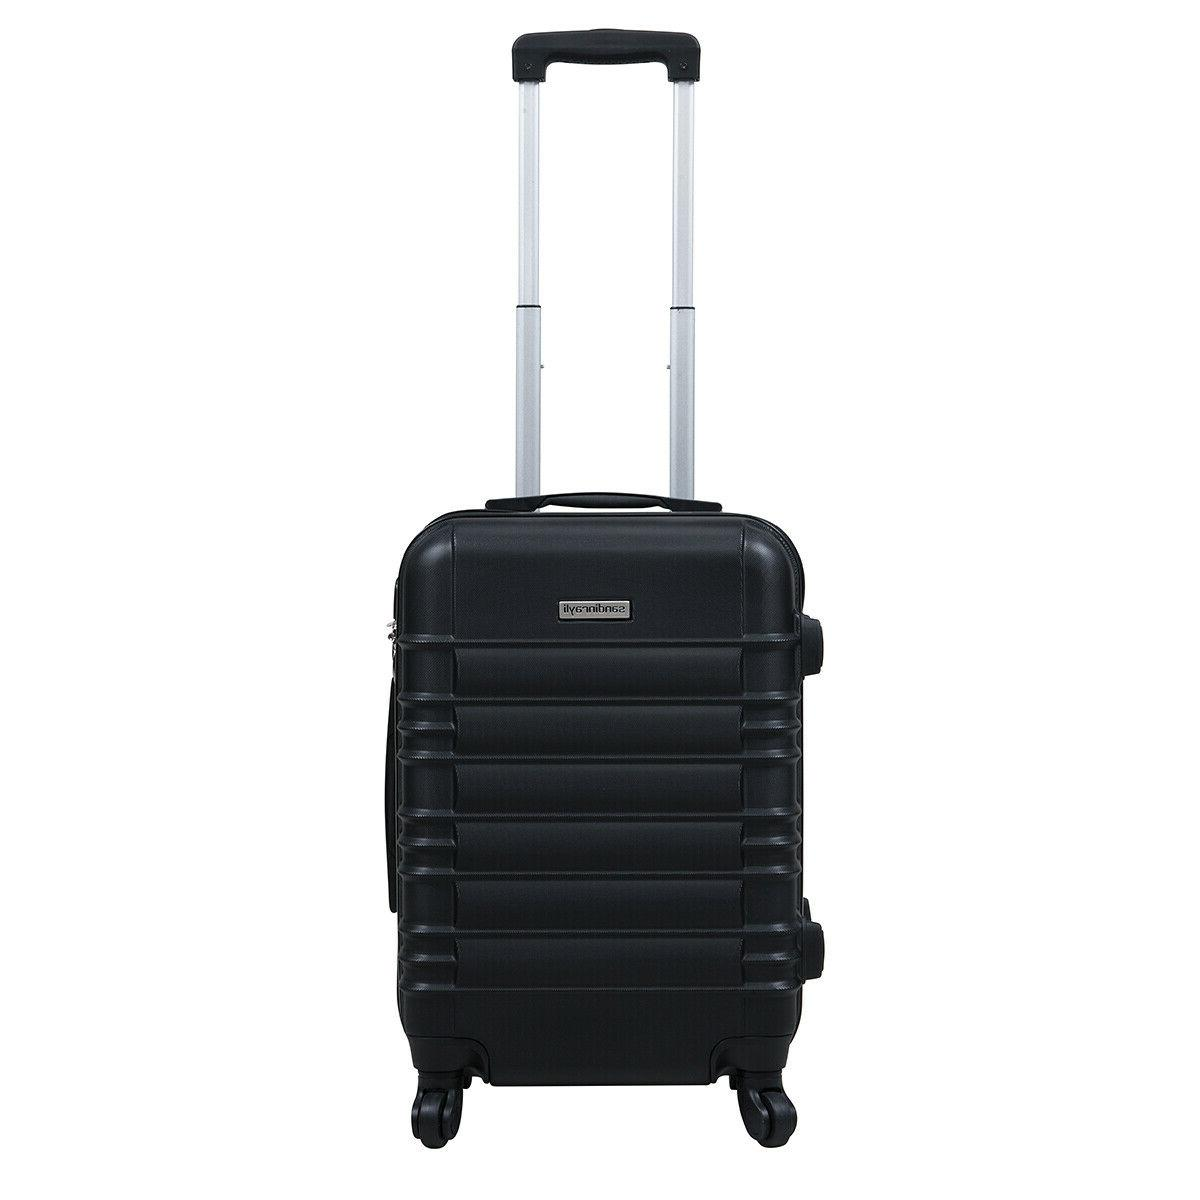 "20"" ABS Luggage Travel Bag Suitcase"